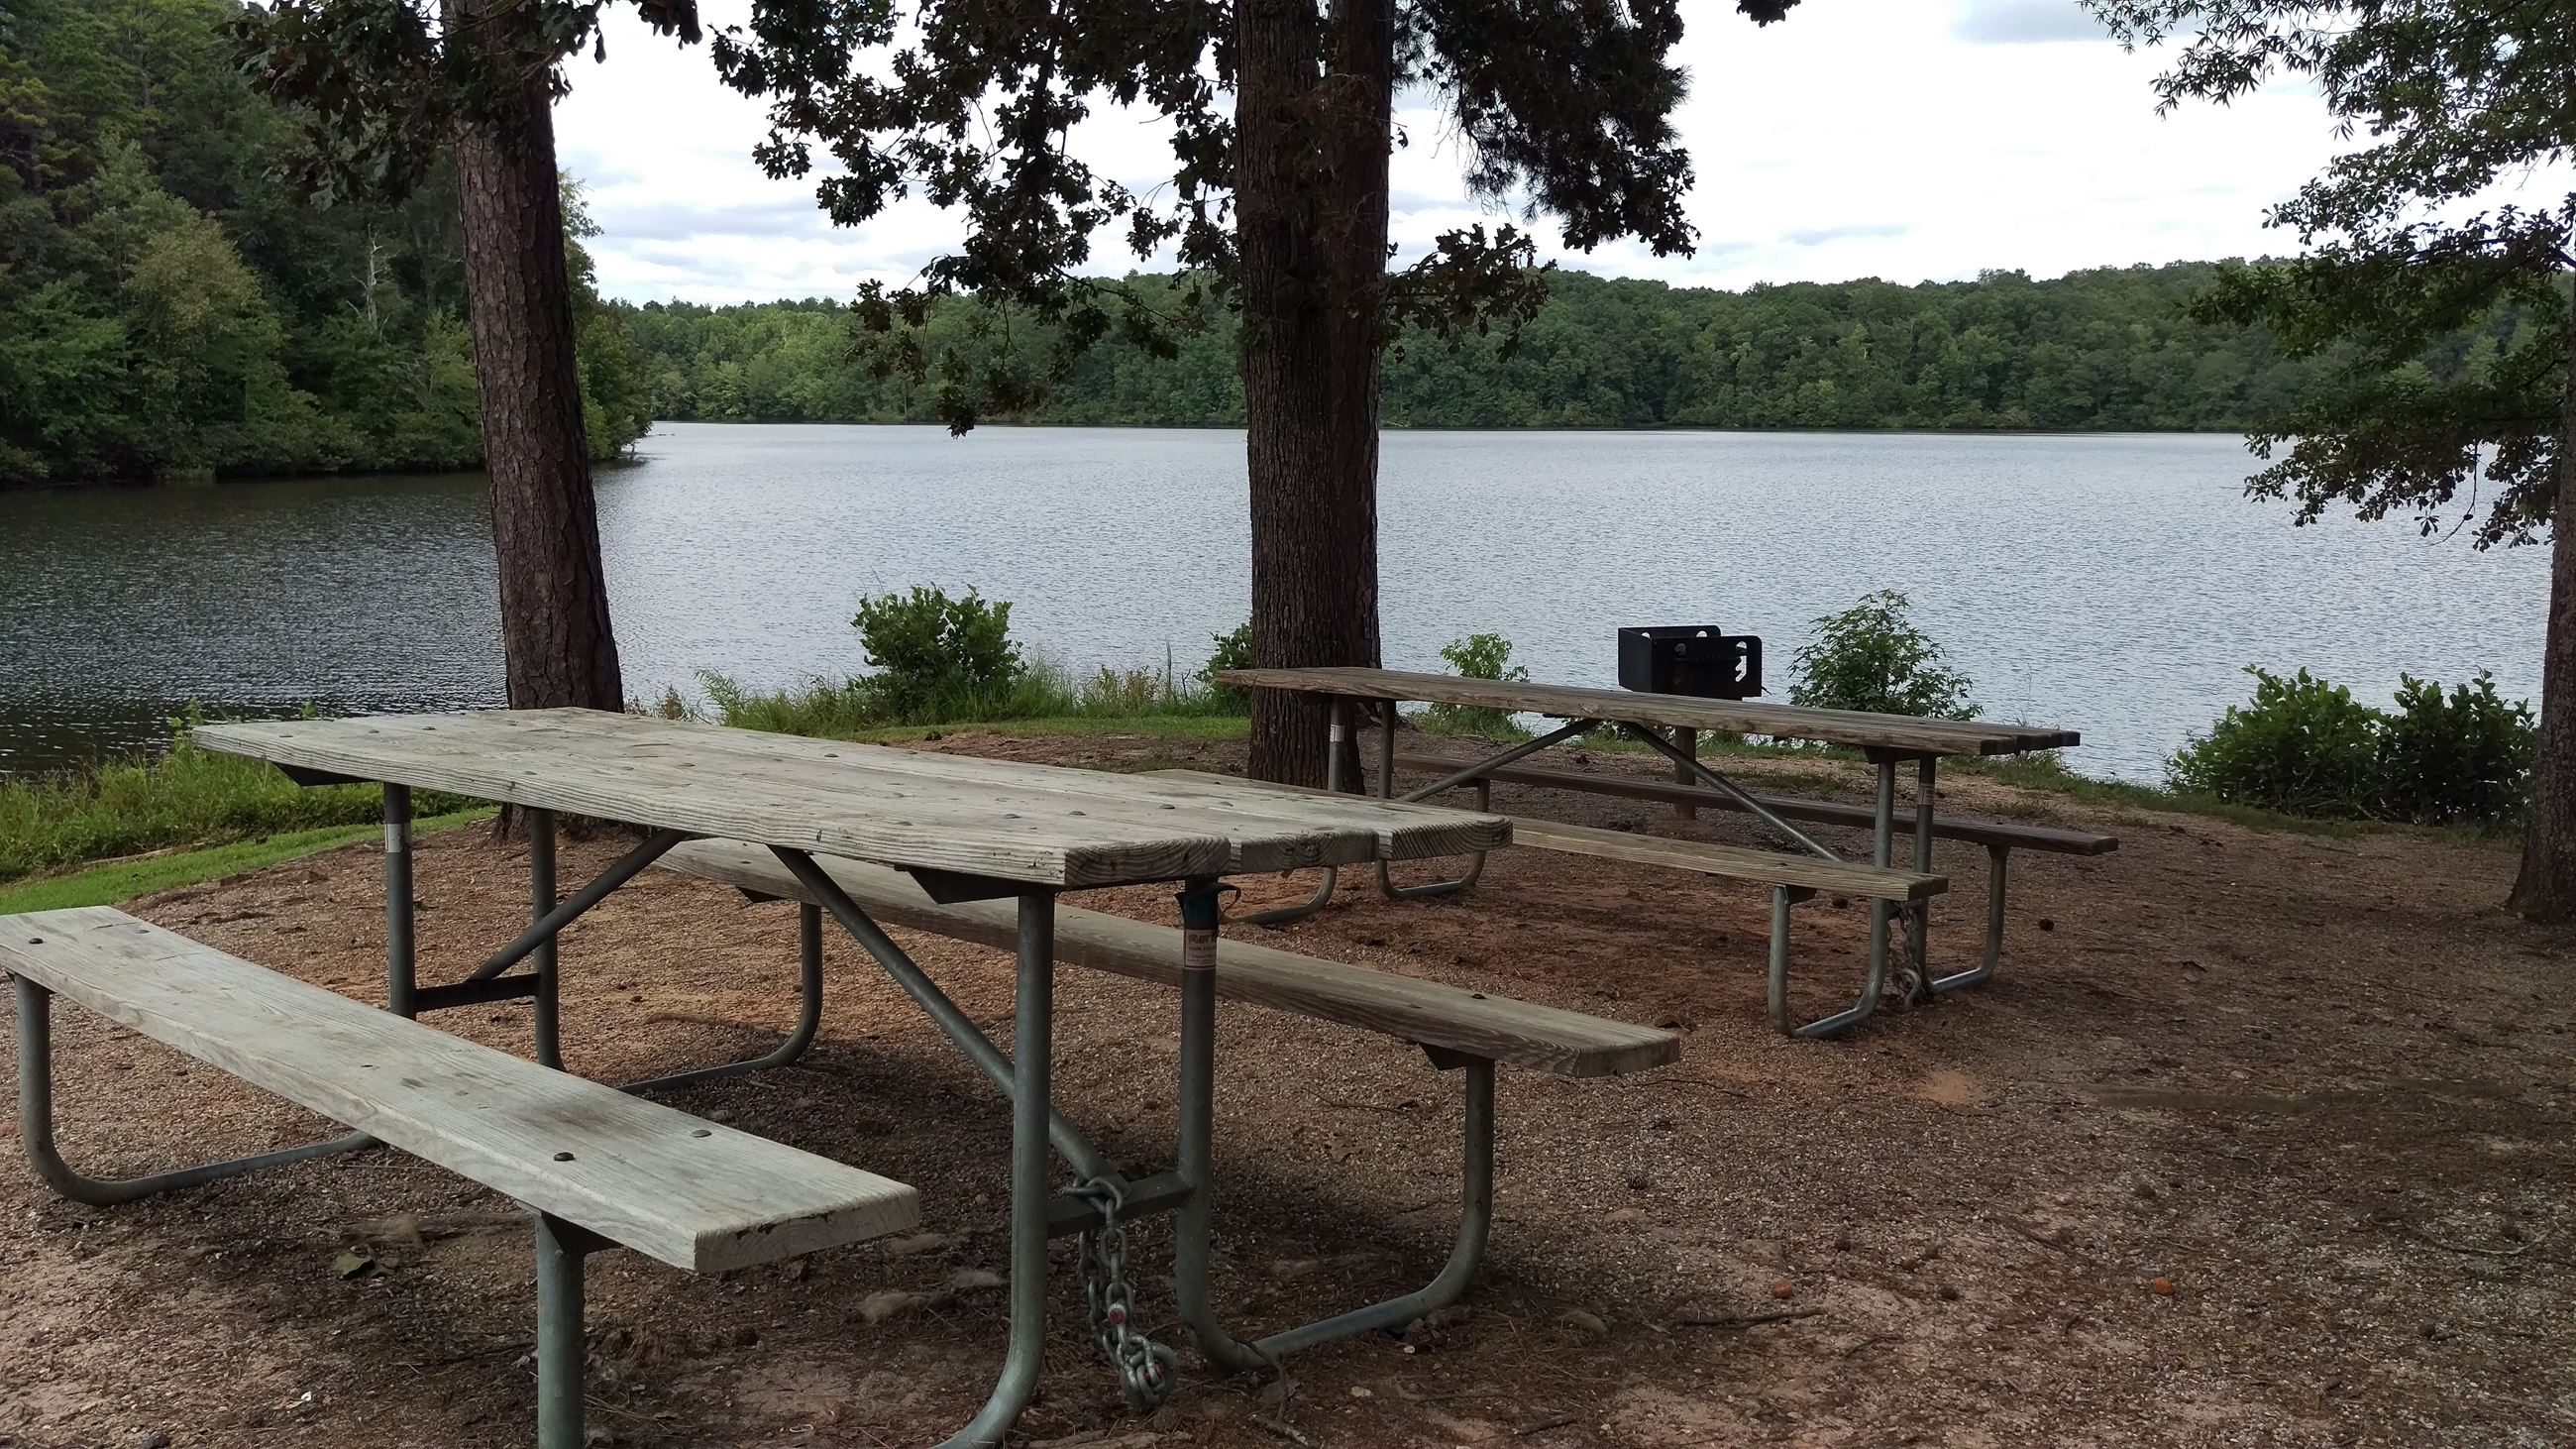 Photo of the Boat Ramp Picnic Area at Sandy Creek Park.